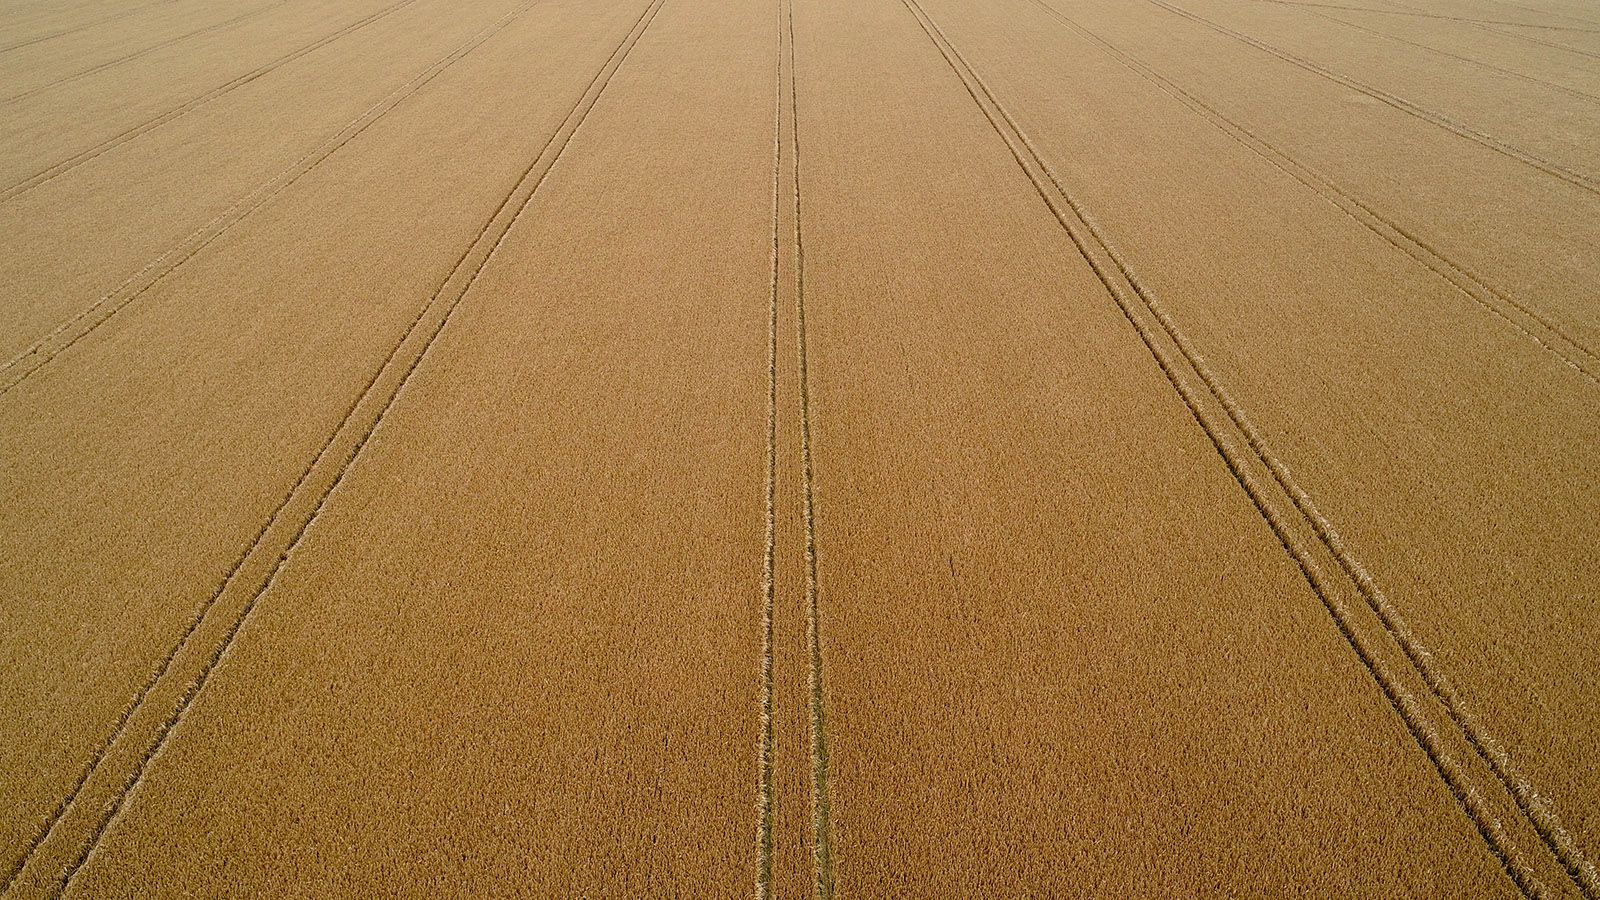 Russian Wheat Getting Cheaper On Record-High On-Farm Stocks. Will This Convert Into Aggressive Exports In 21/22?